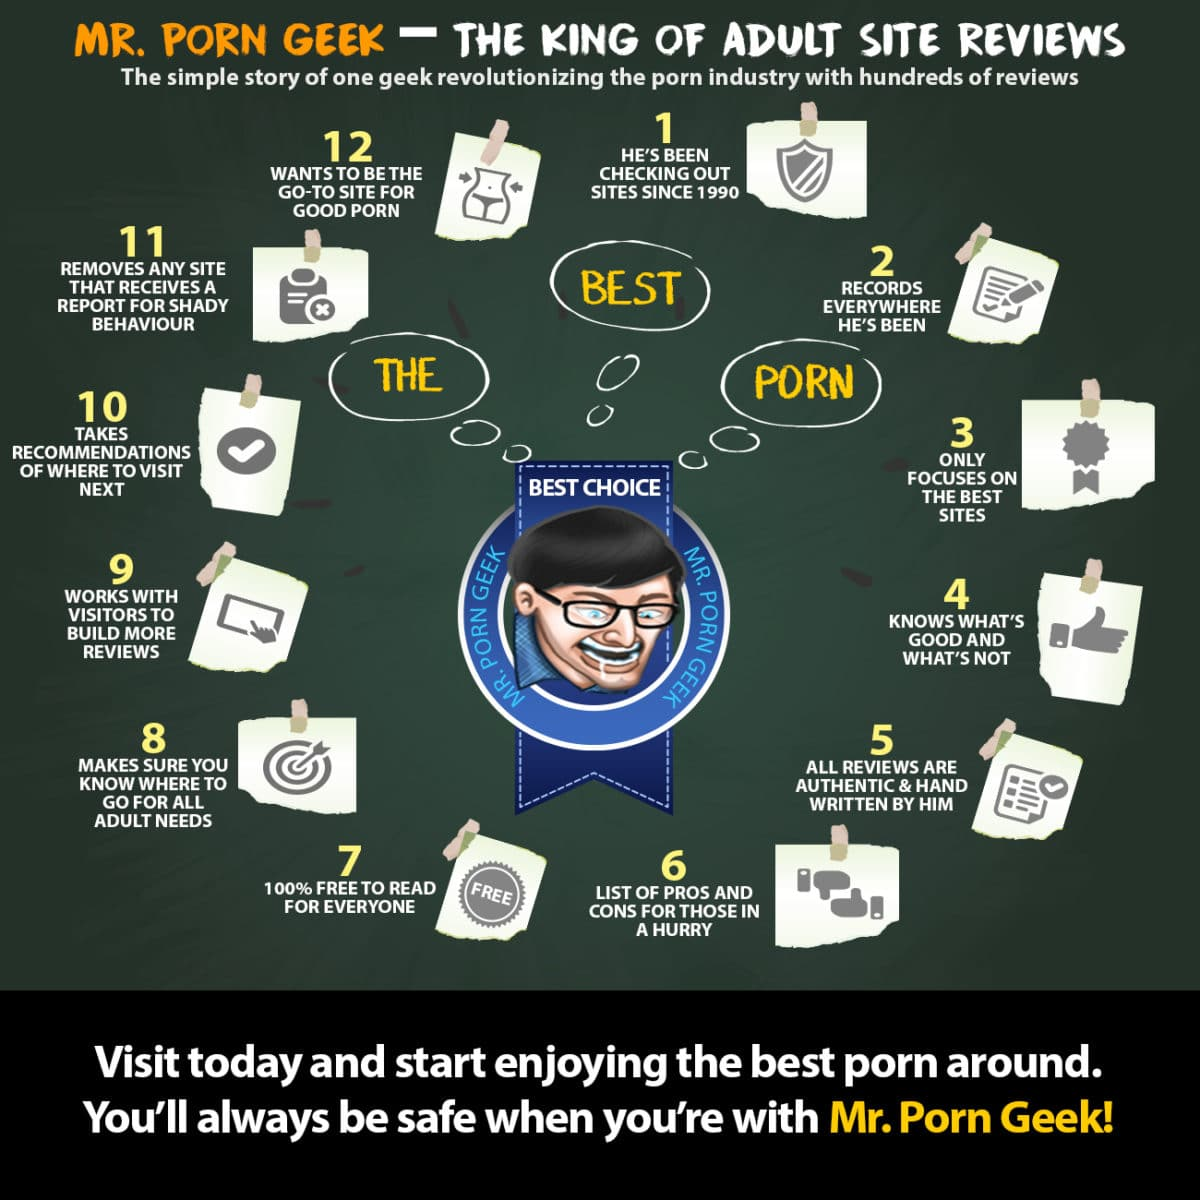 How Mr. Porn Geek Works